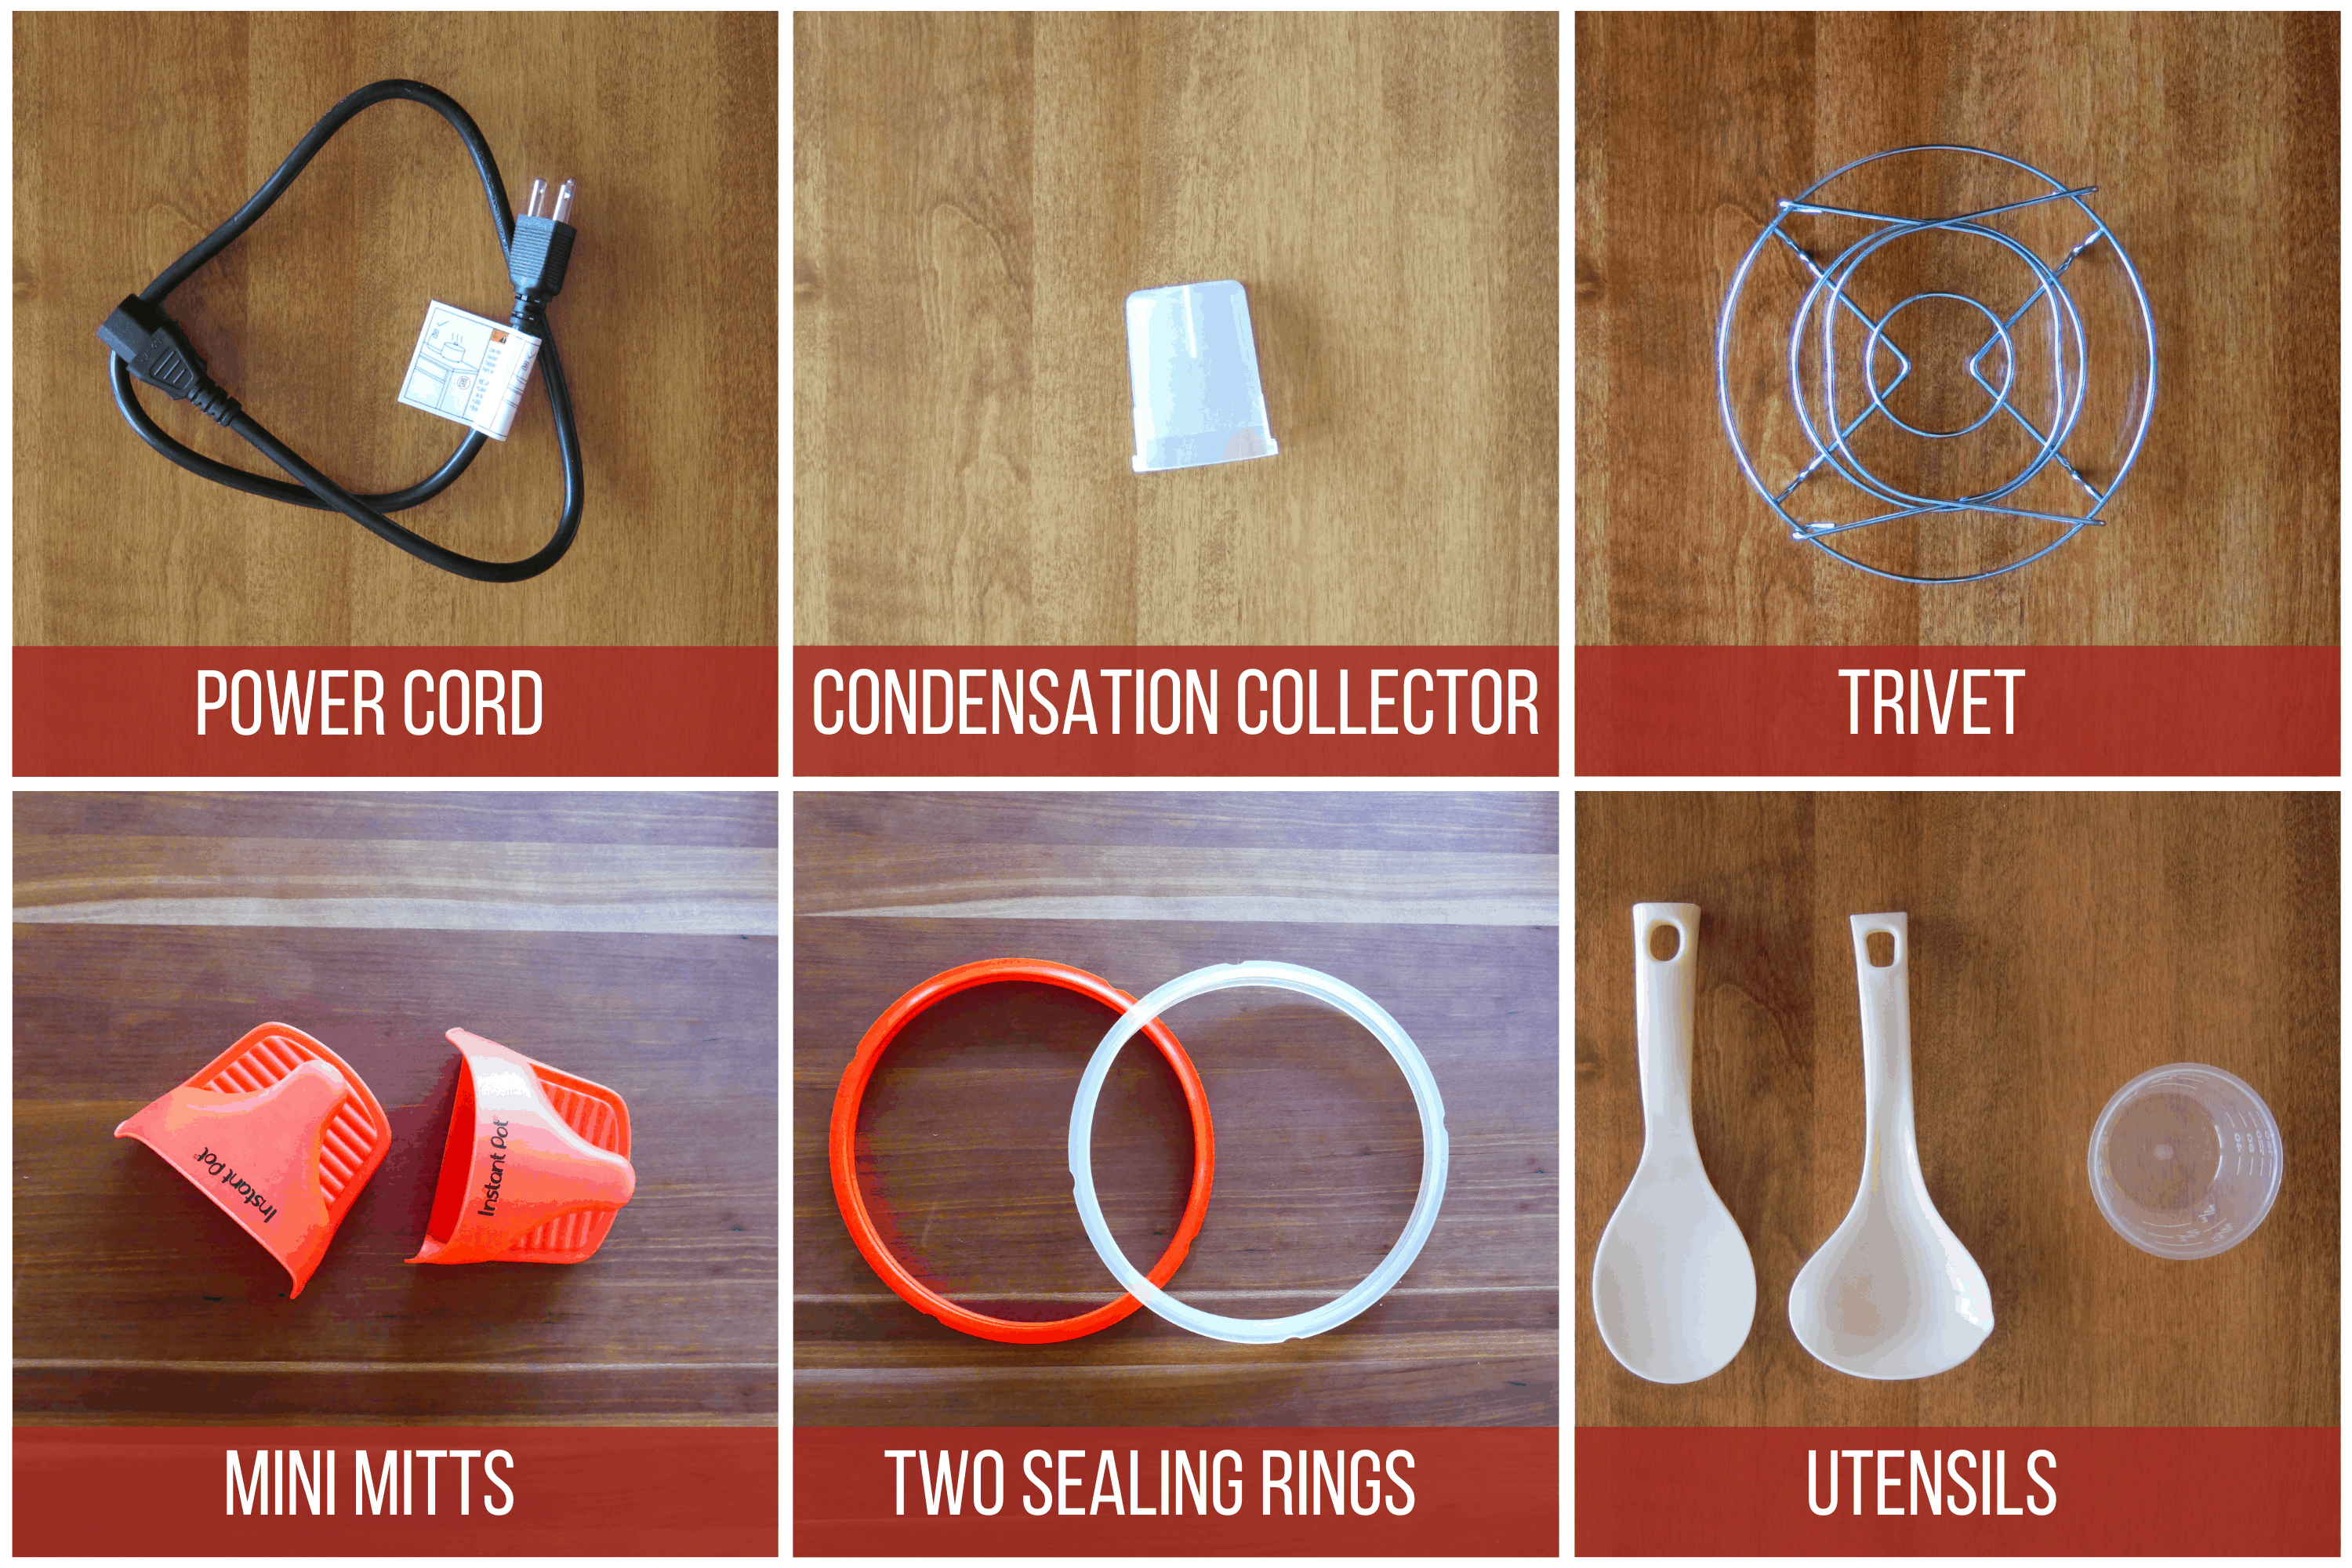 Instant Pot Duo Gourmet Accessories -power cord, condensation collector, trivet, mini mitts, two sealing rings, utensils